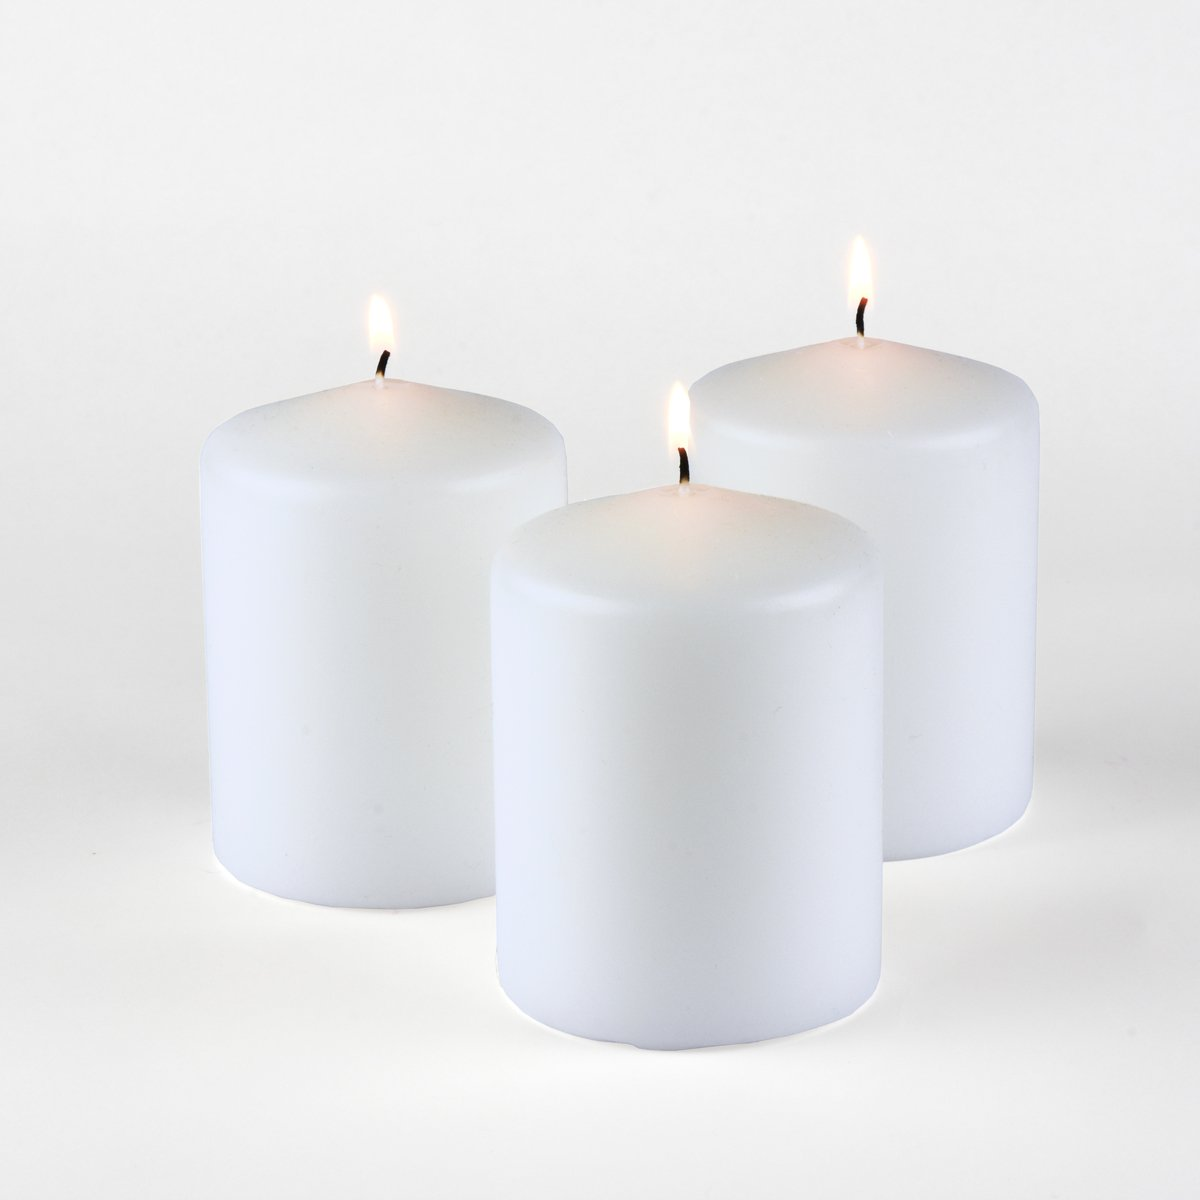 Higlow Dripless Pillar Candles Unscented Elegant Brides Wedding Decoration Centerpieces, Parties, Gifts, 3'' L x 3'' H x 4'' W, White, Set of 3